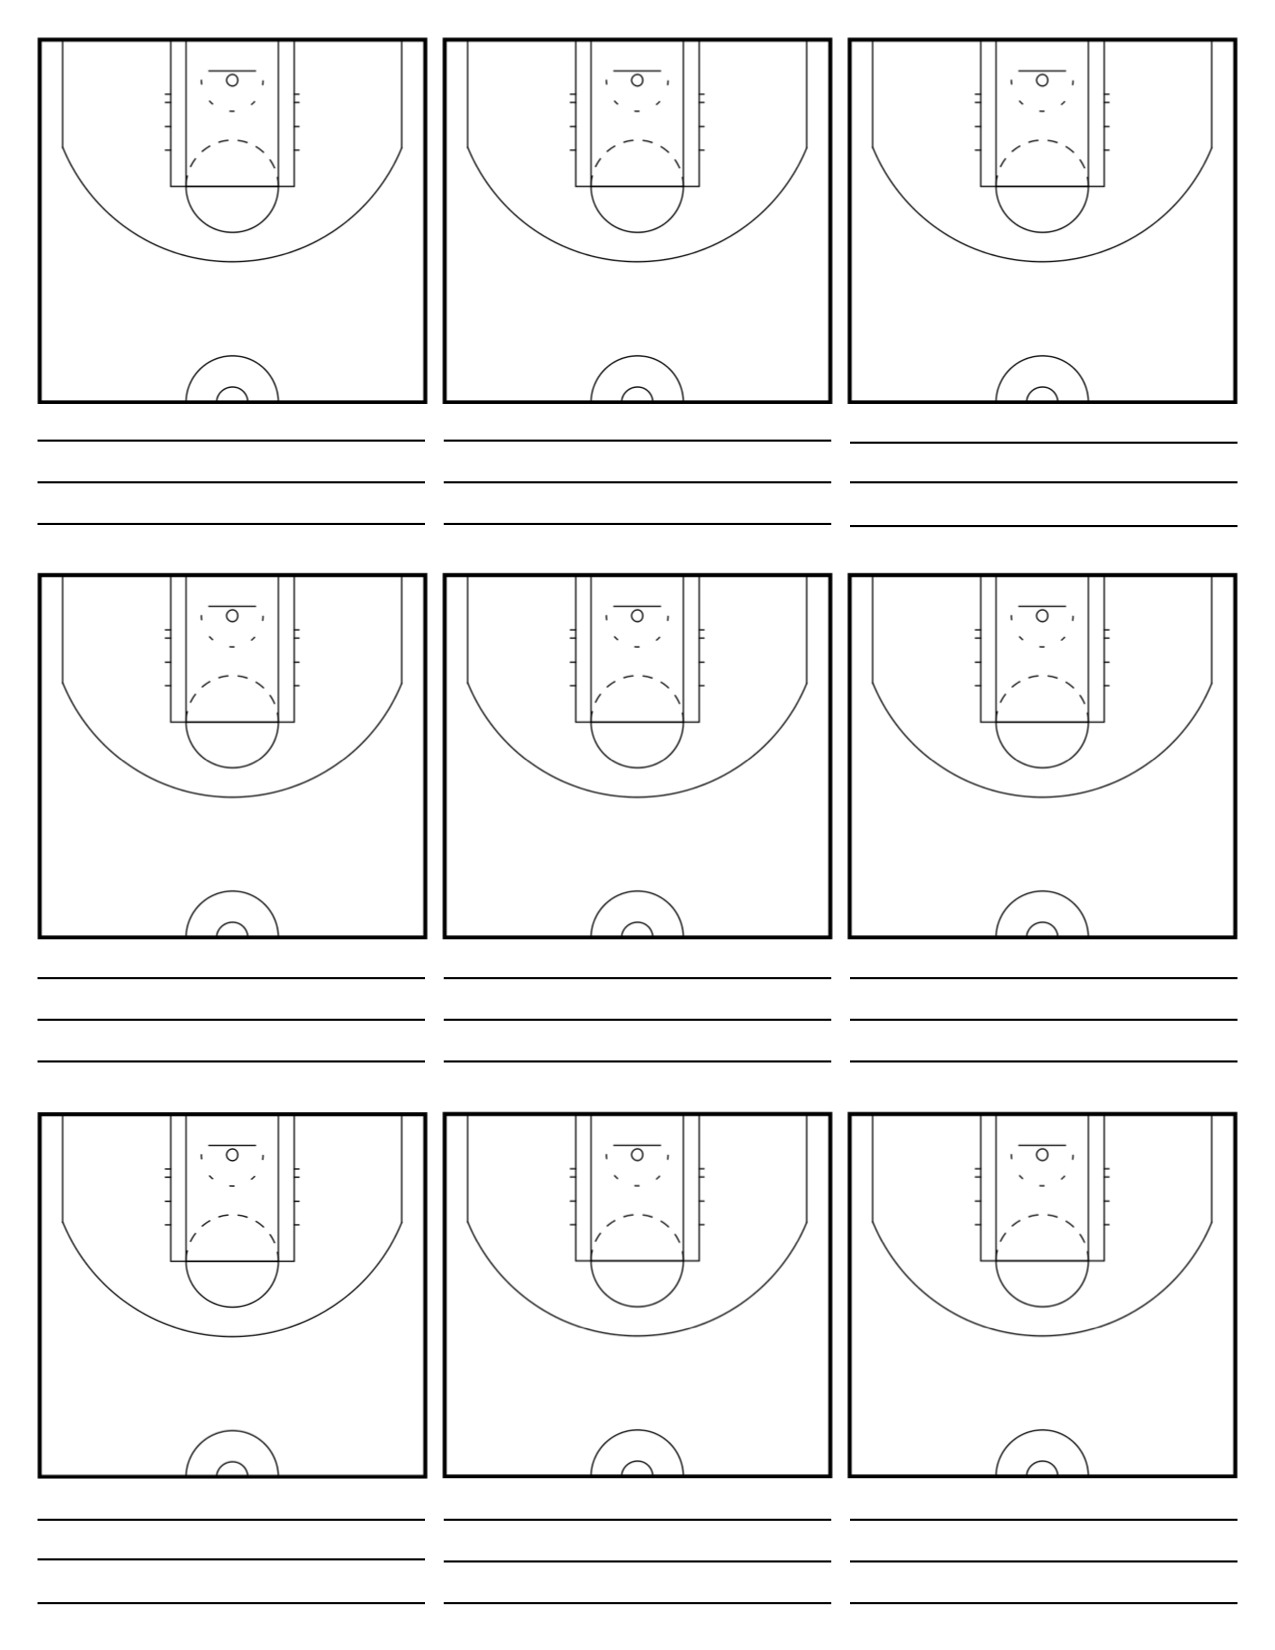 image relating to Printable Basketball Court Diagram known as Basketball Playbook Template. courtroom diagrams teach 39 s